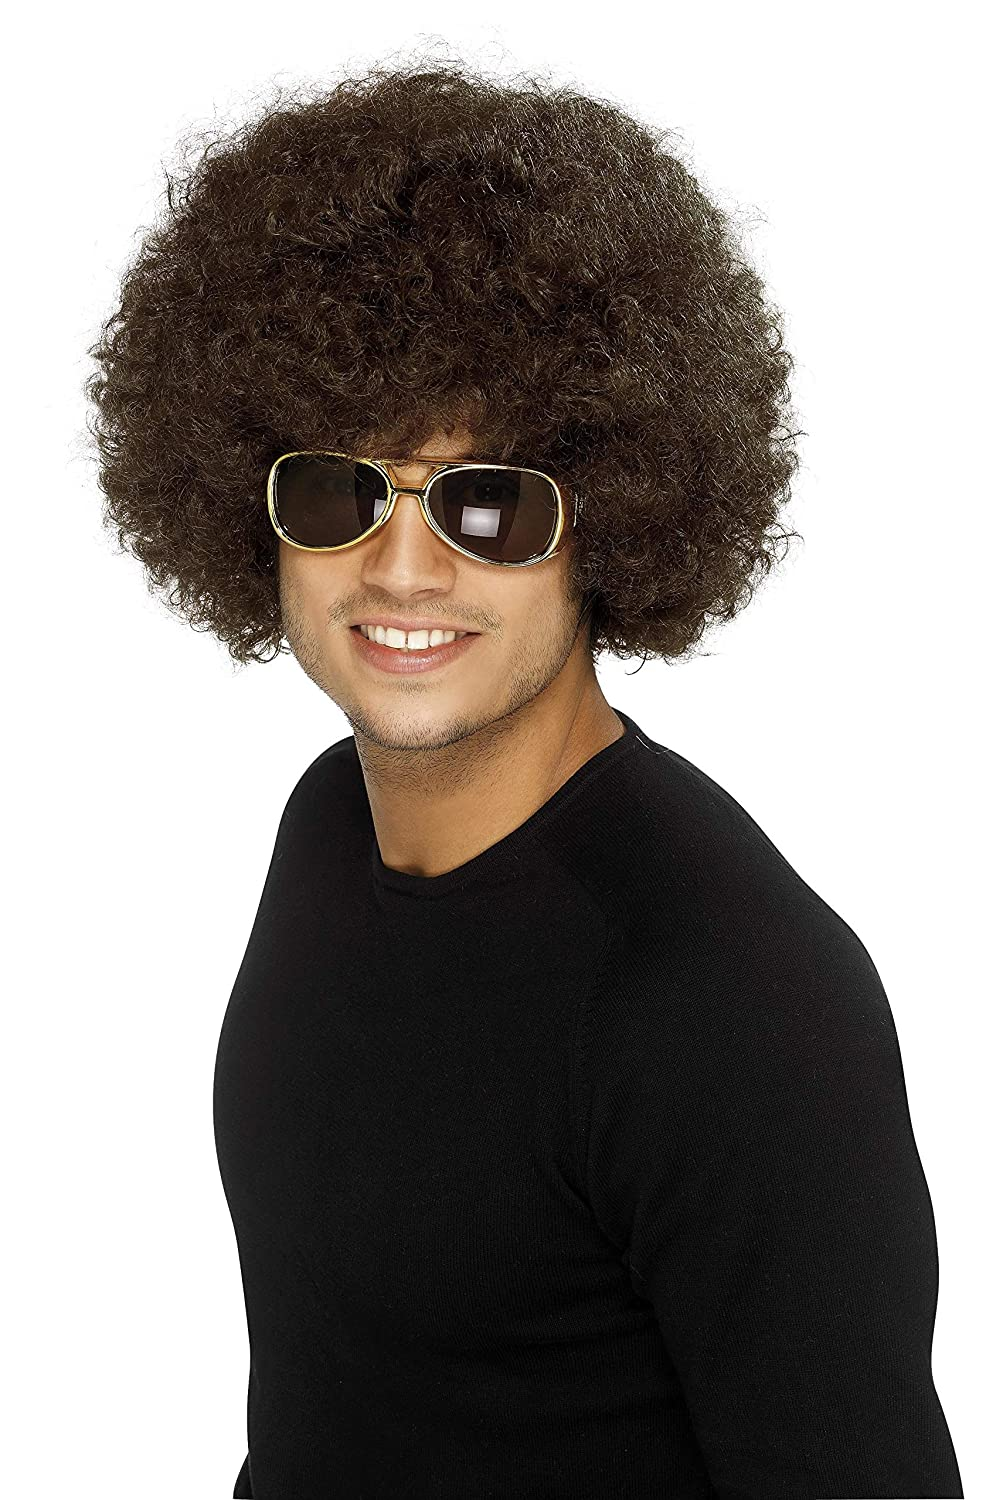 Smiffy's Adult Unisex 60's and 70's Funky Afro Wig One Size 5020570432532 RH Smith & Sons LTD